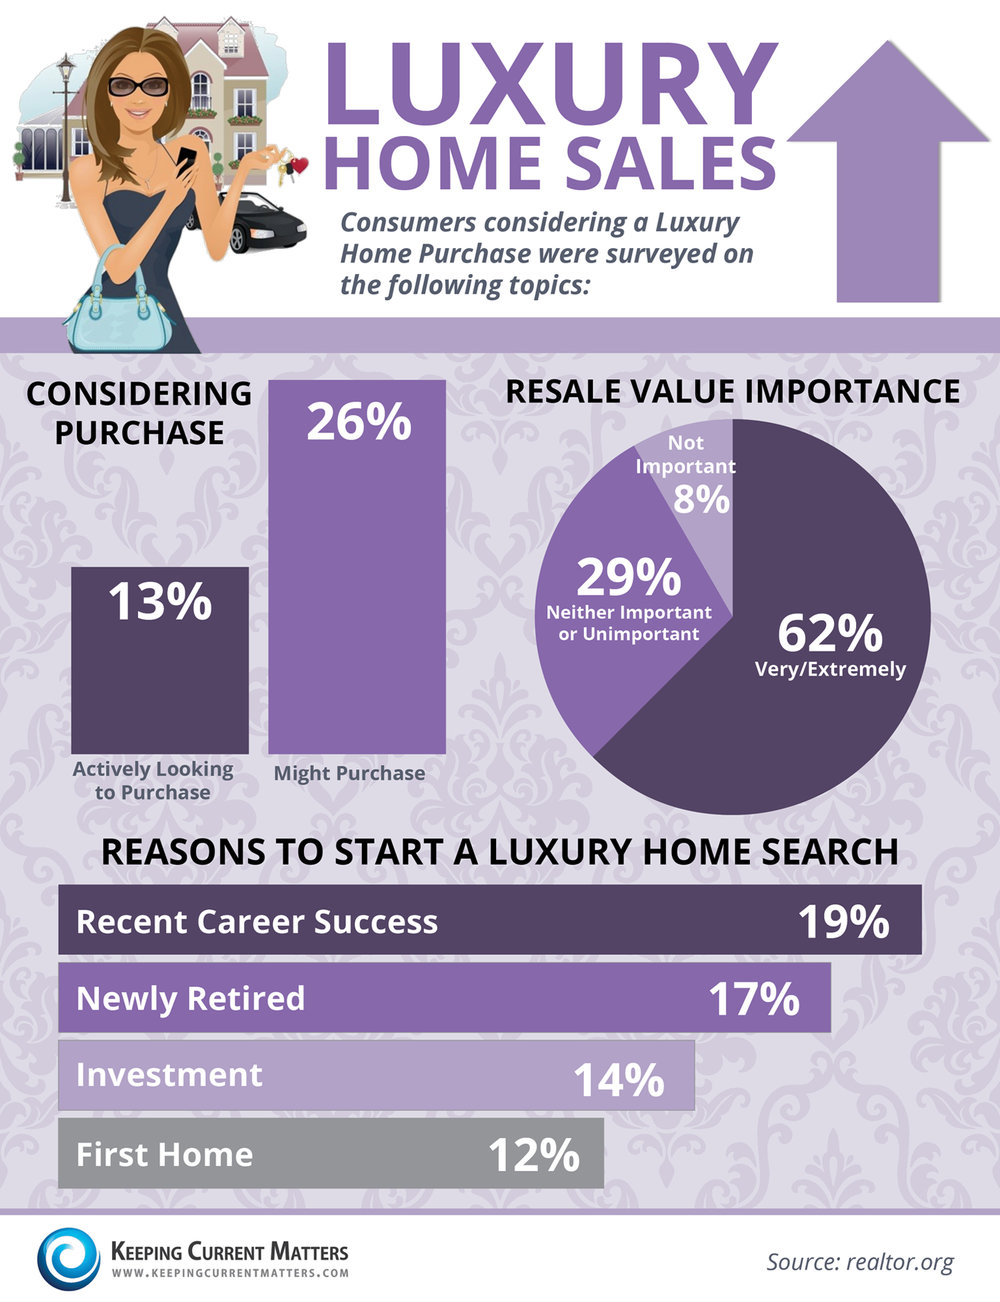 Luxury-Home-Sales1500.jpg